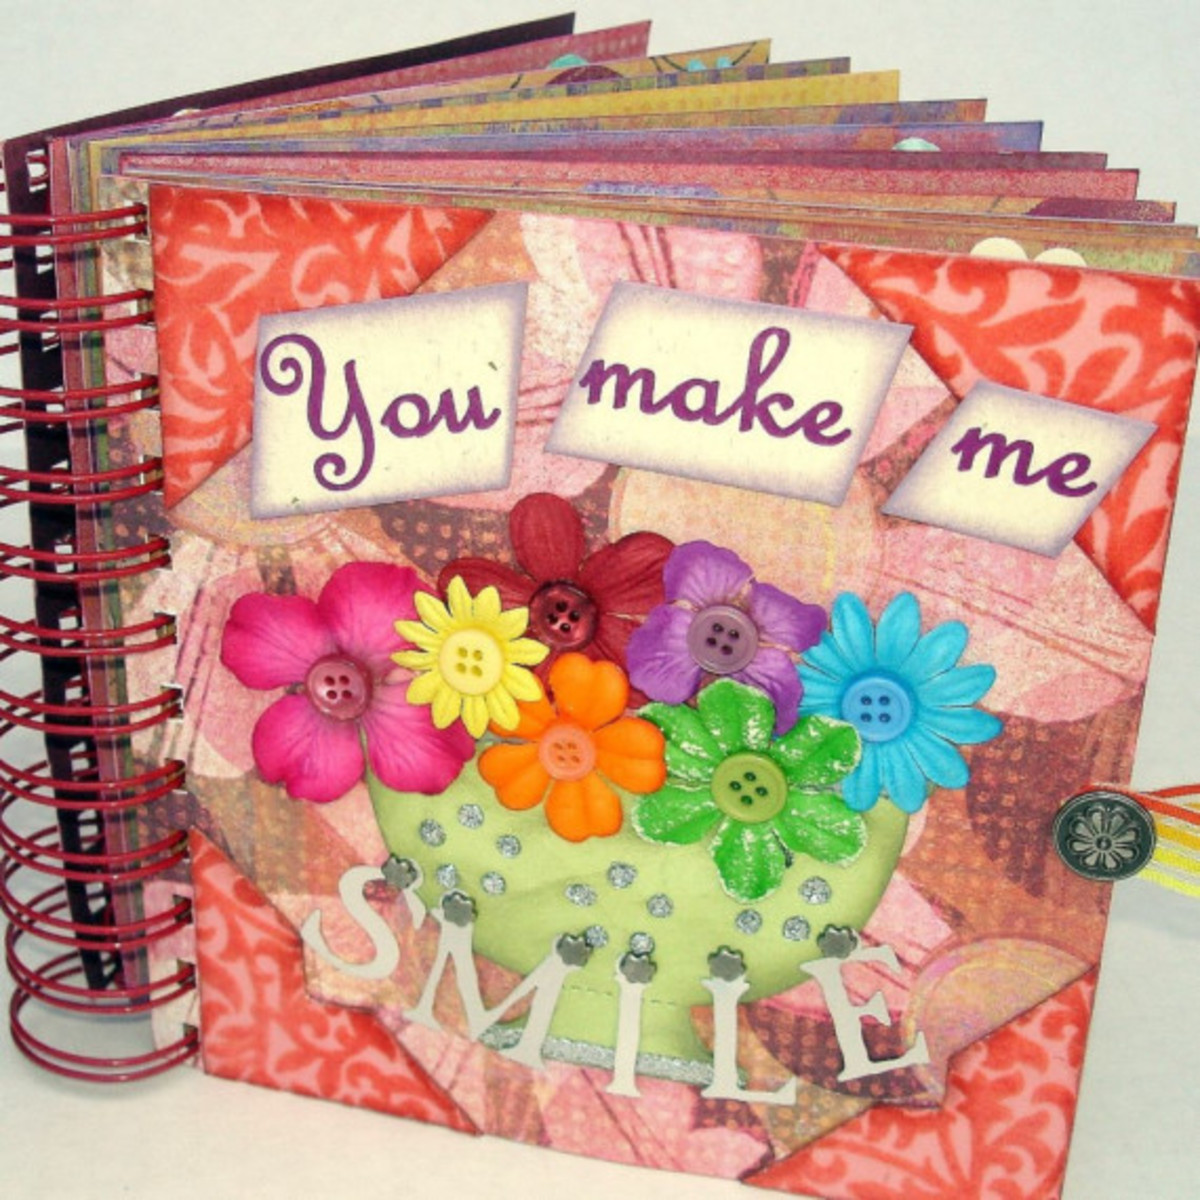 Scrapbooking Albums – Scrapbook Creative ideas, Crafts Galore, Making Memories